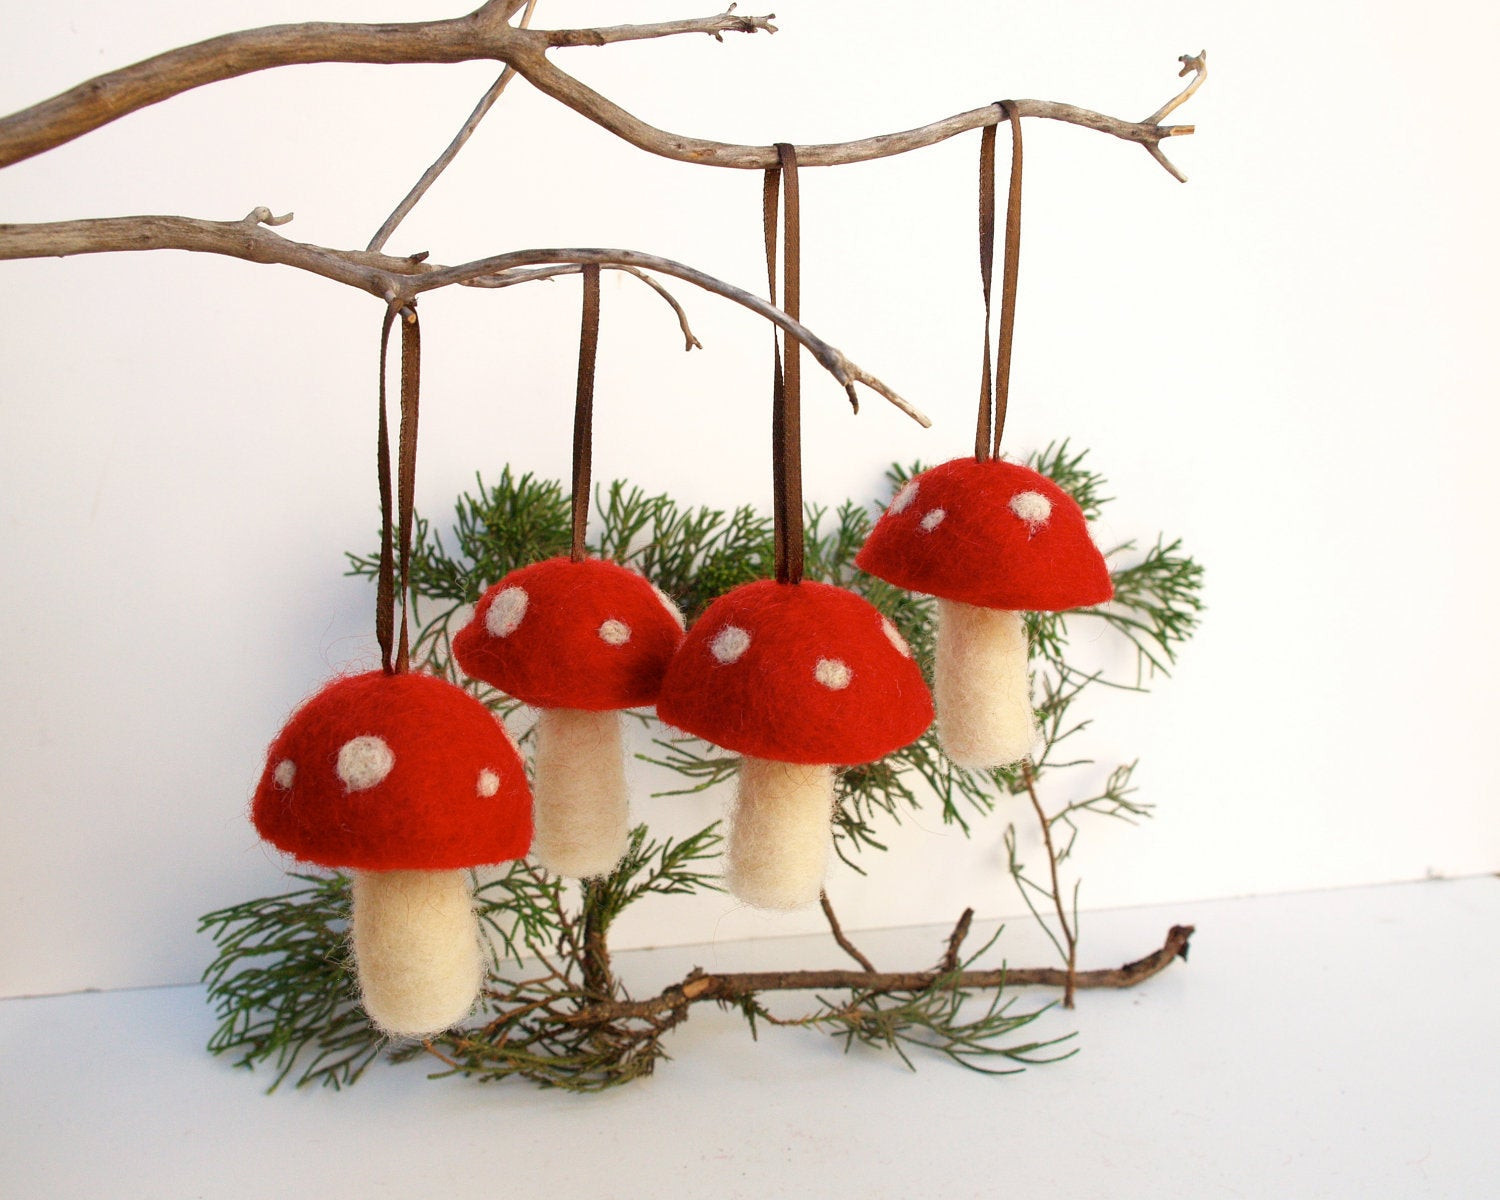 Mushrooms And Christmas  Waldorf Ornaments red toadstool mushroom decoration woodland